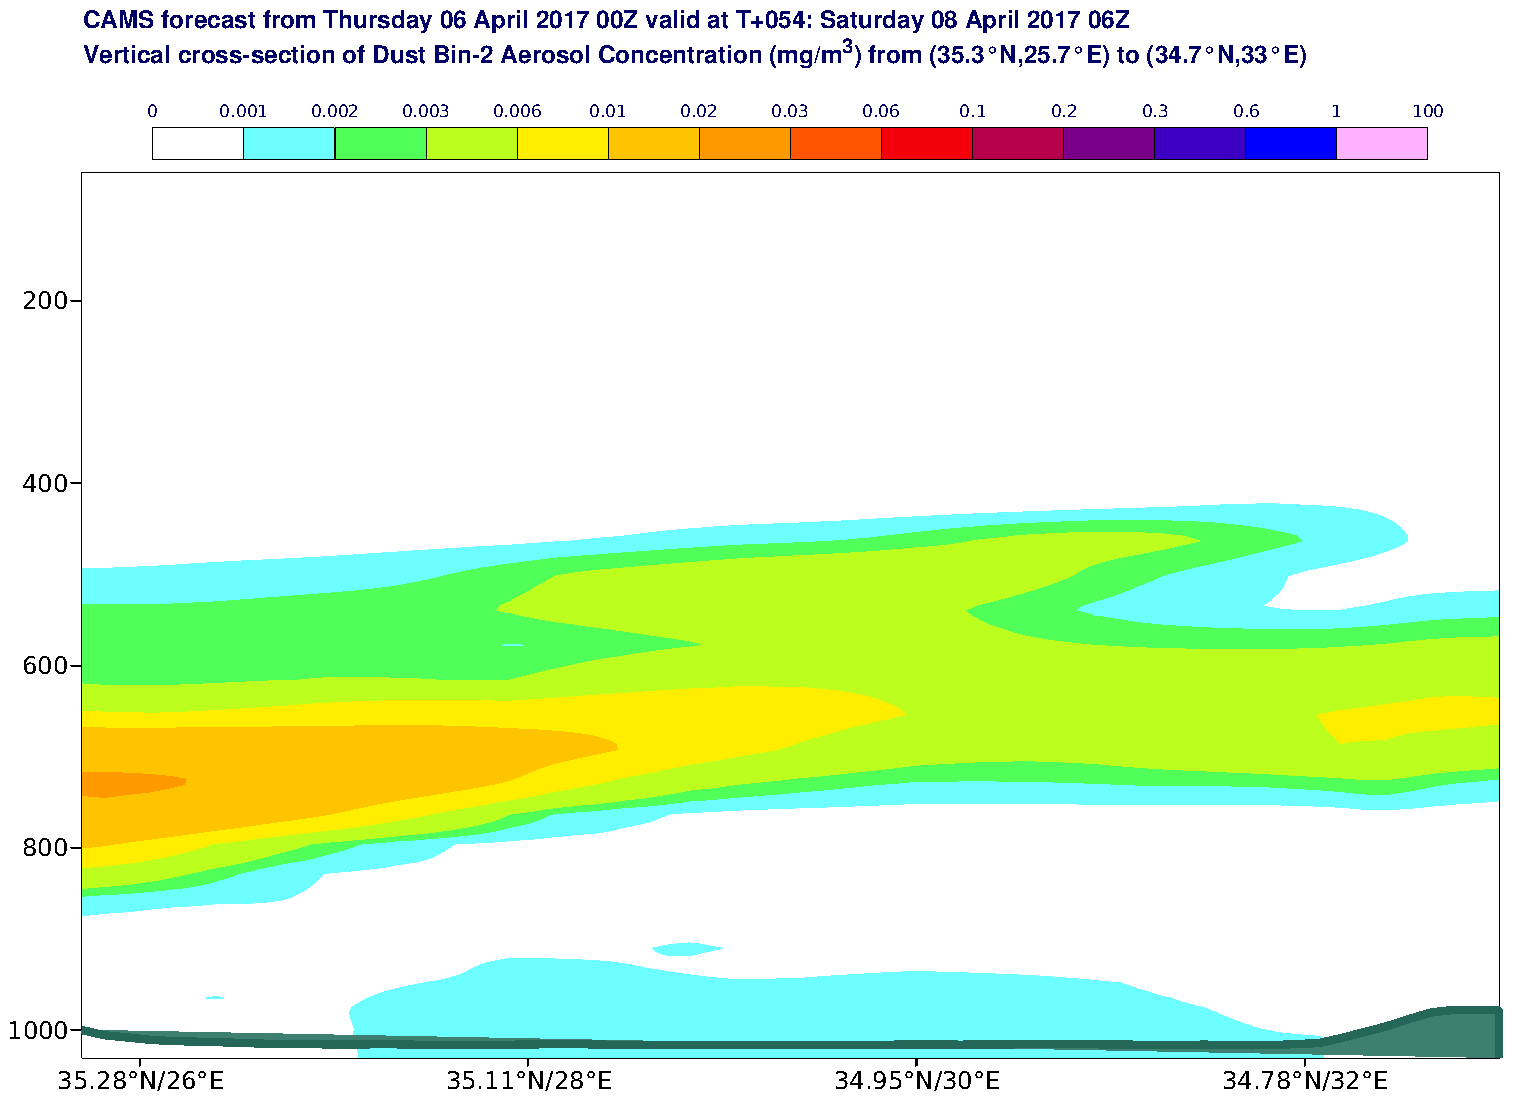 Vertical cross-section of Dust Bin-2 Aerosol Concentration (mg/m3) valid at T54 - 2017-04-08 06:00